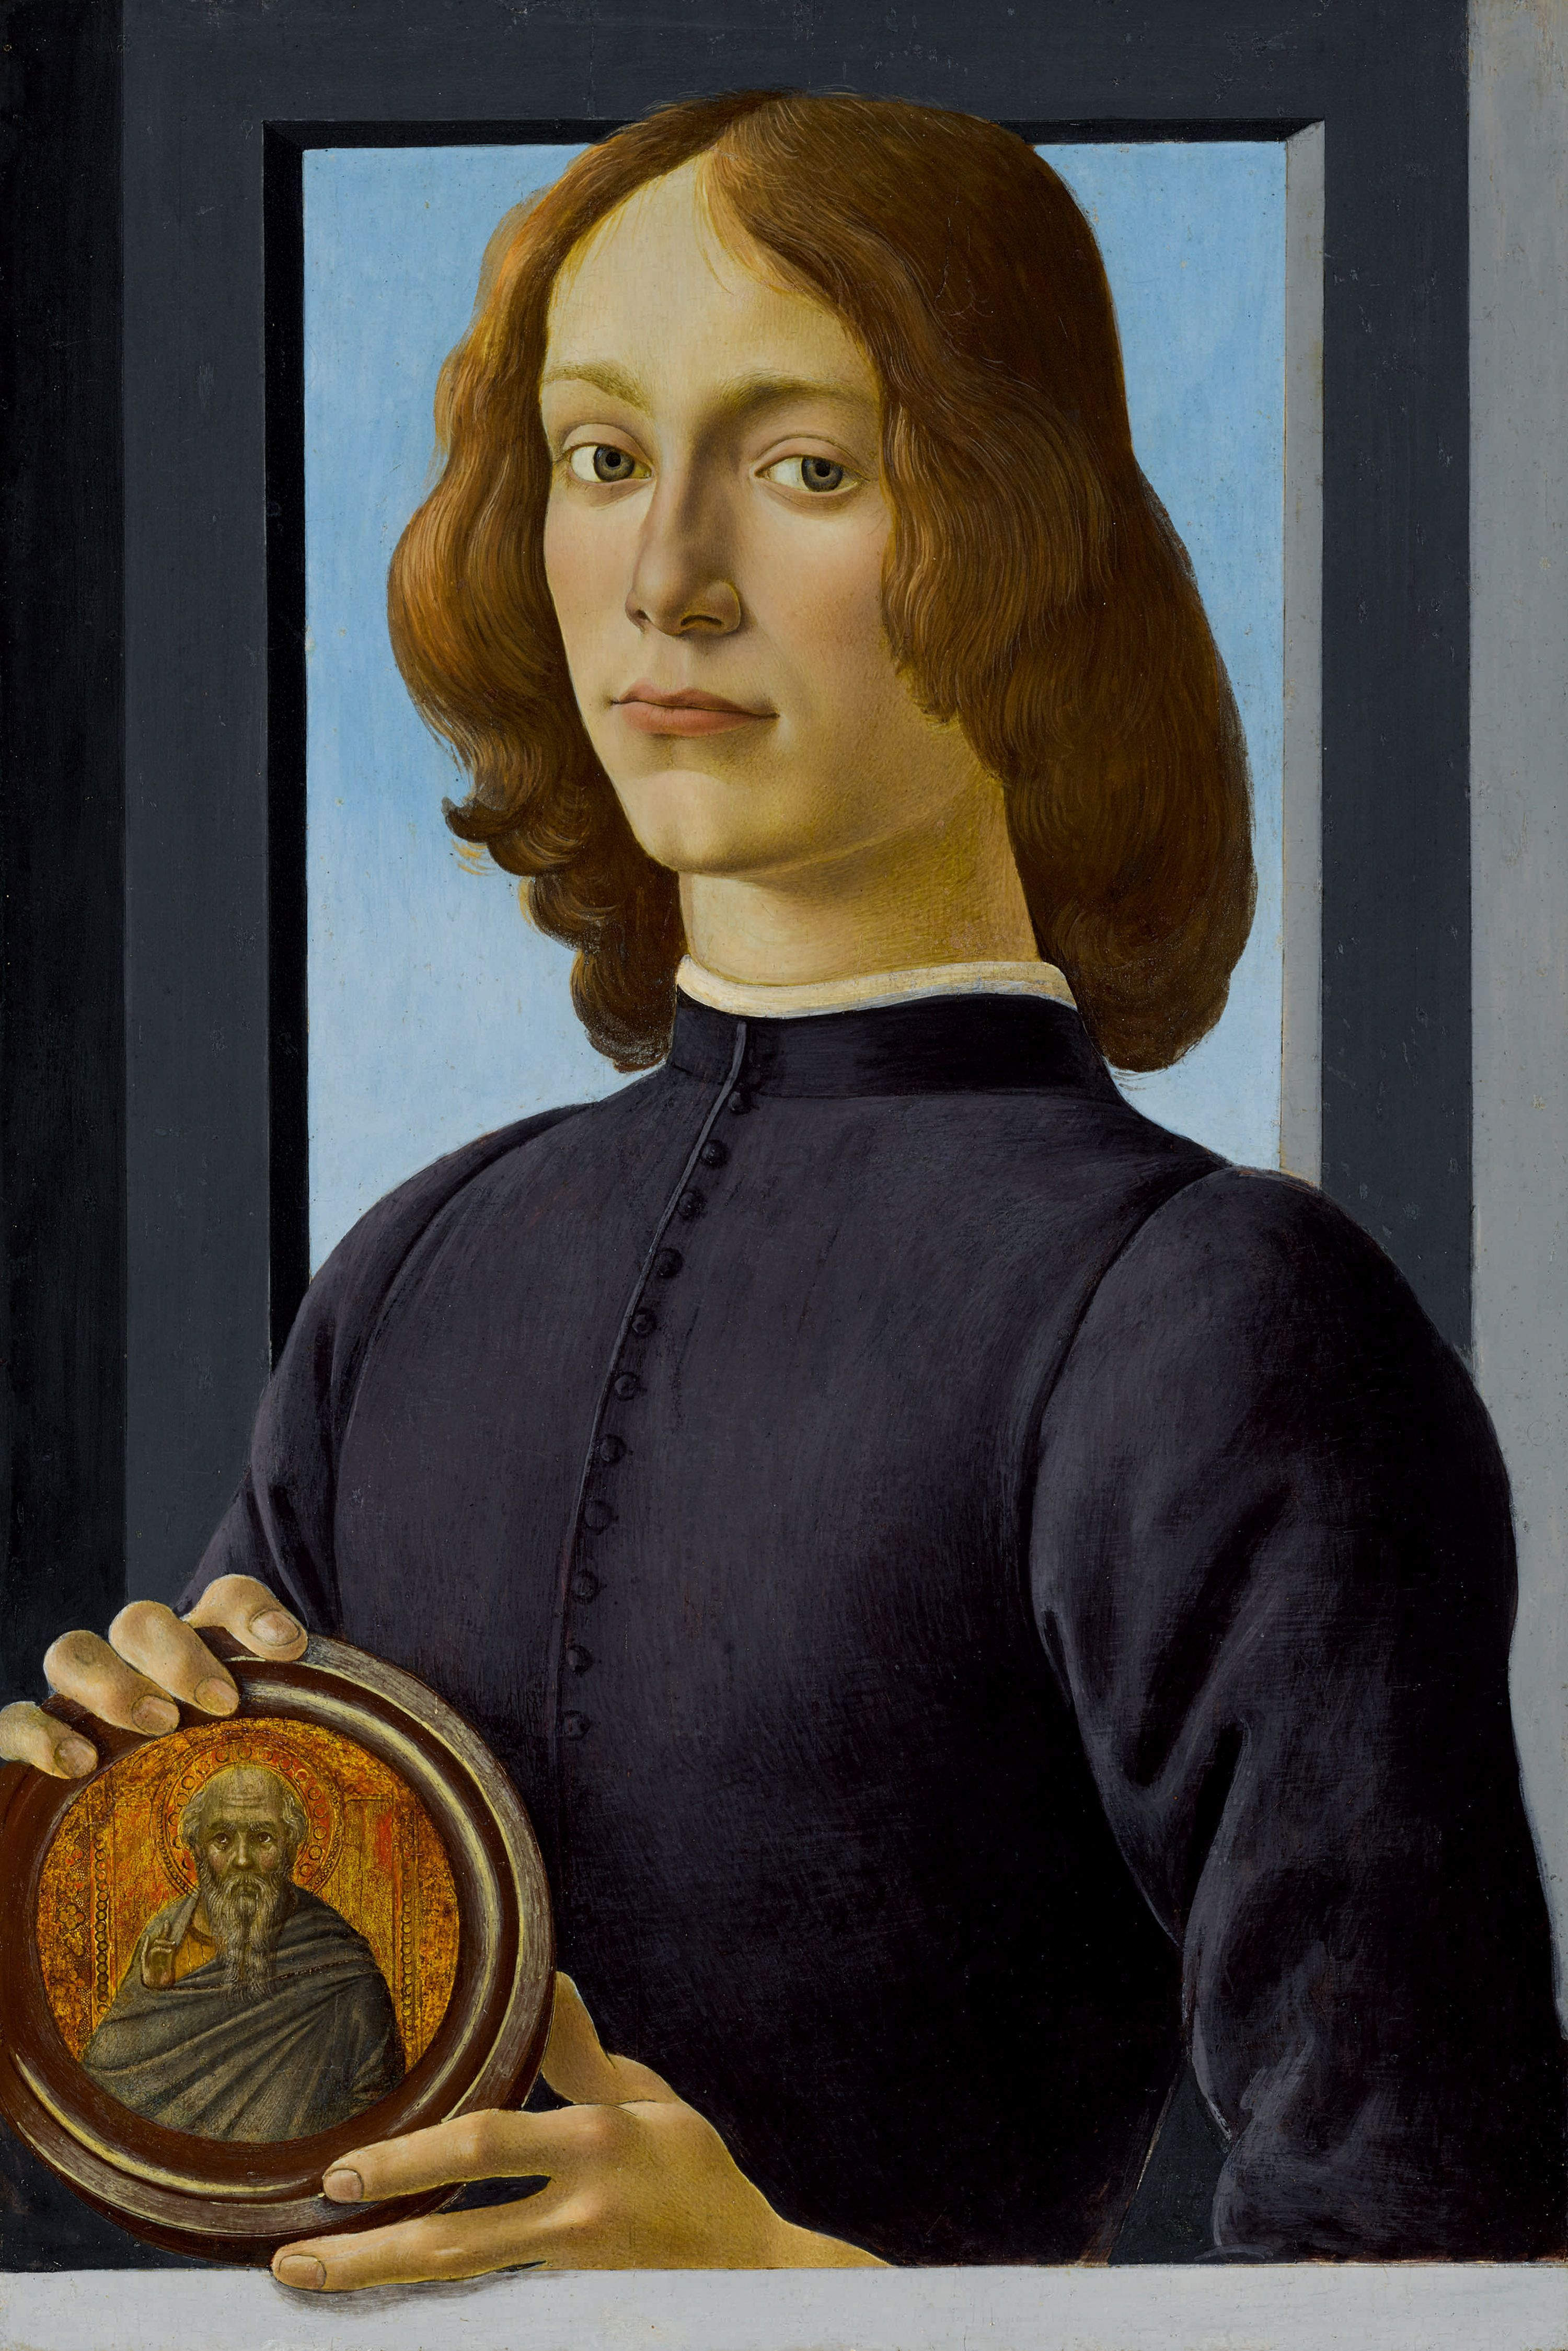 Botticelli portrait sells for record $92.1m at Sotheby's in New York   The  Art Newspaper